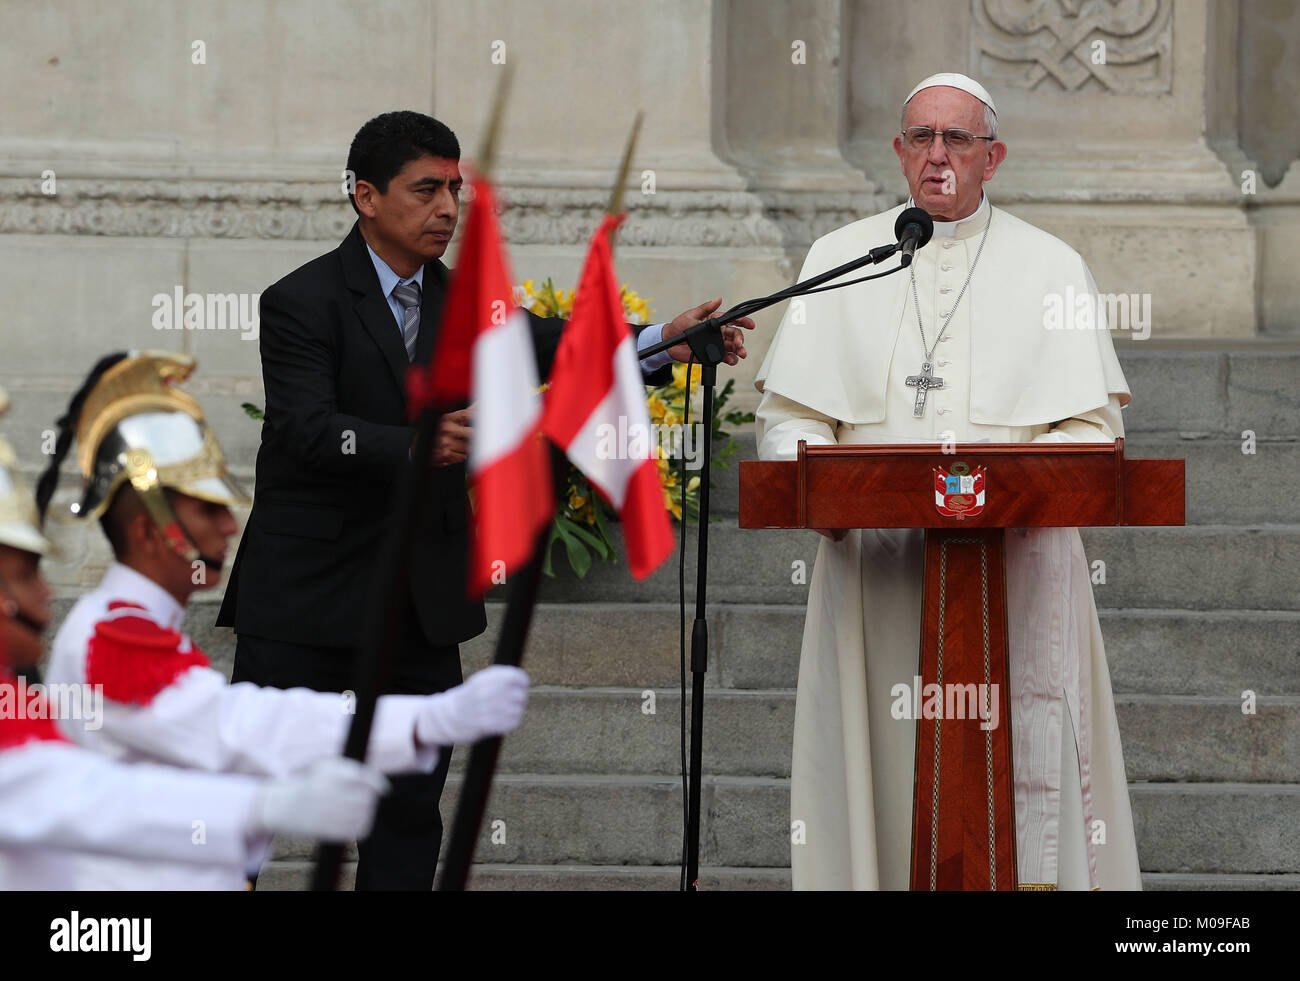 Pope Francis speaks as he arrives at the Government Palace, in Lima, Peru, 19 January 2018. The pontiff is in Peru - Stock Image